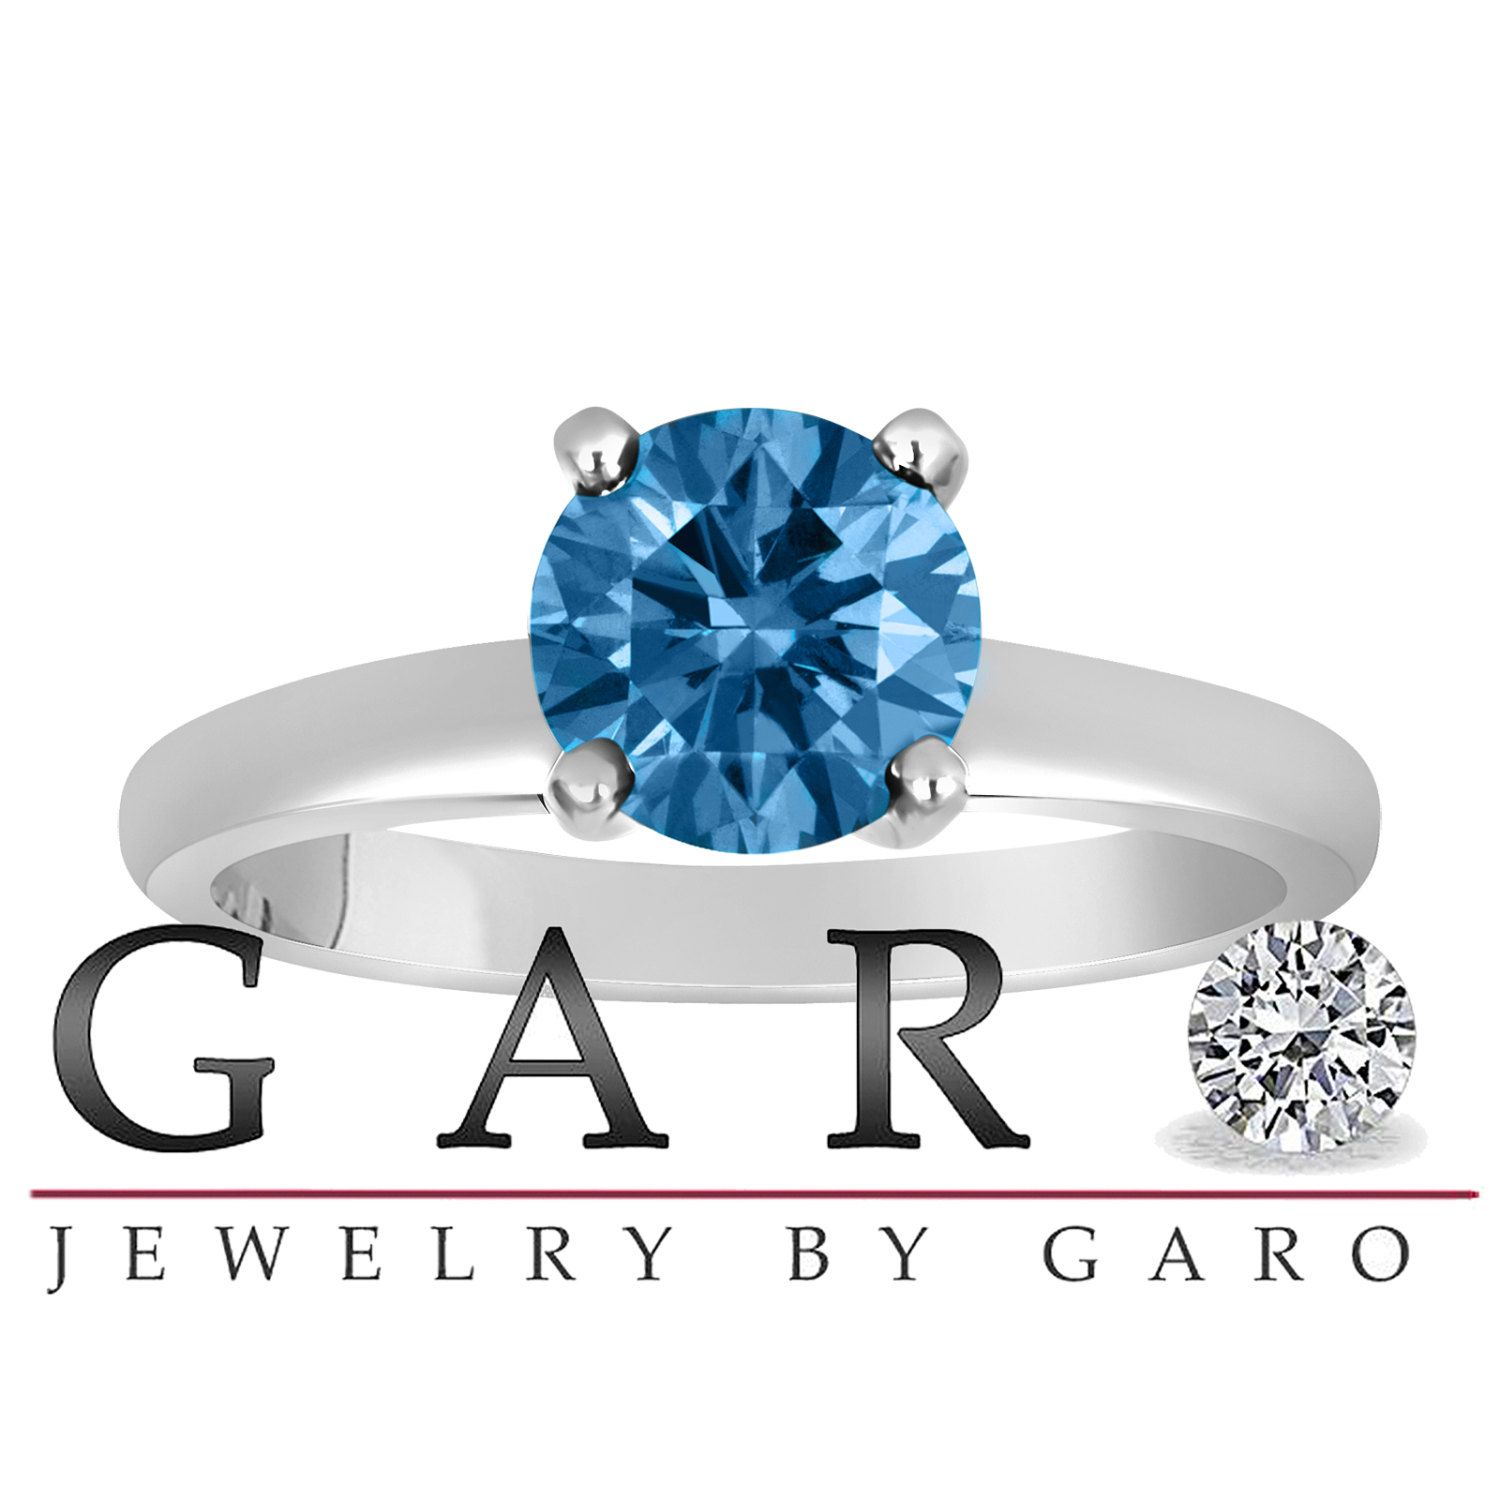 Jewelry by Garo